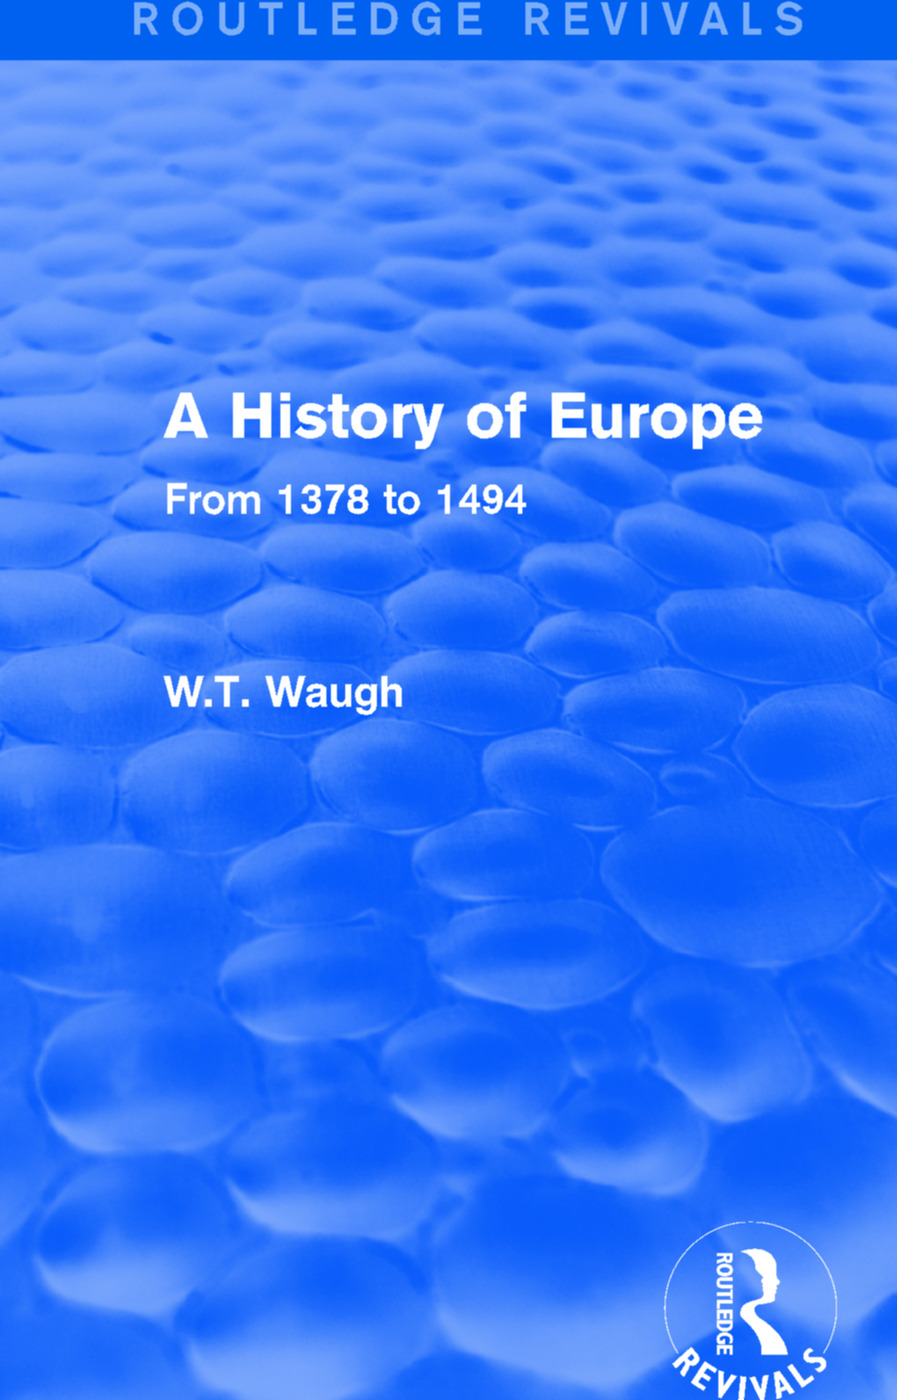 A History of Europe: From 1378 to 1494 book cover